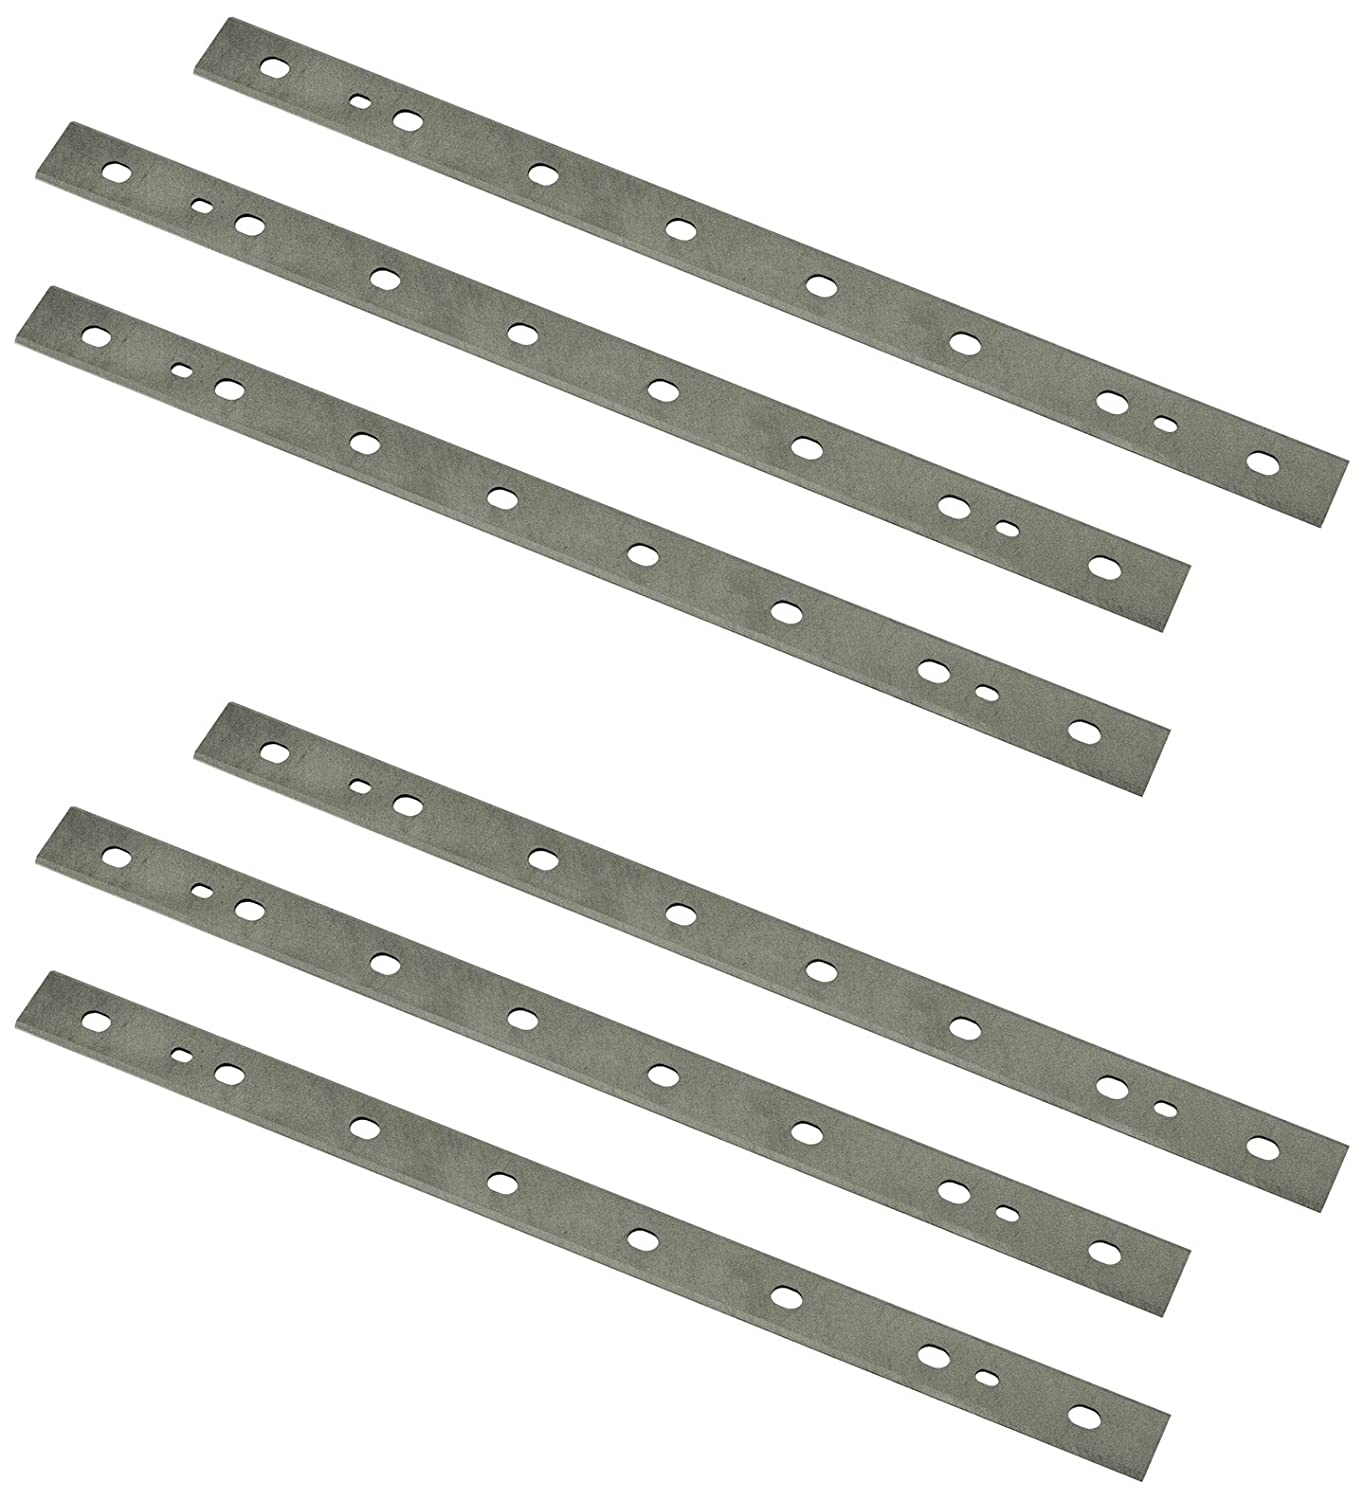 POWERTEC 13 Inch Heat Treated M2 Laminated HSS Inch Knives for DeWalt 735 Planer | Dual Sided Replacement Planer Blades DW7352– 2 Sets | 6 Blades